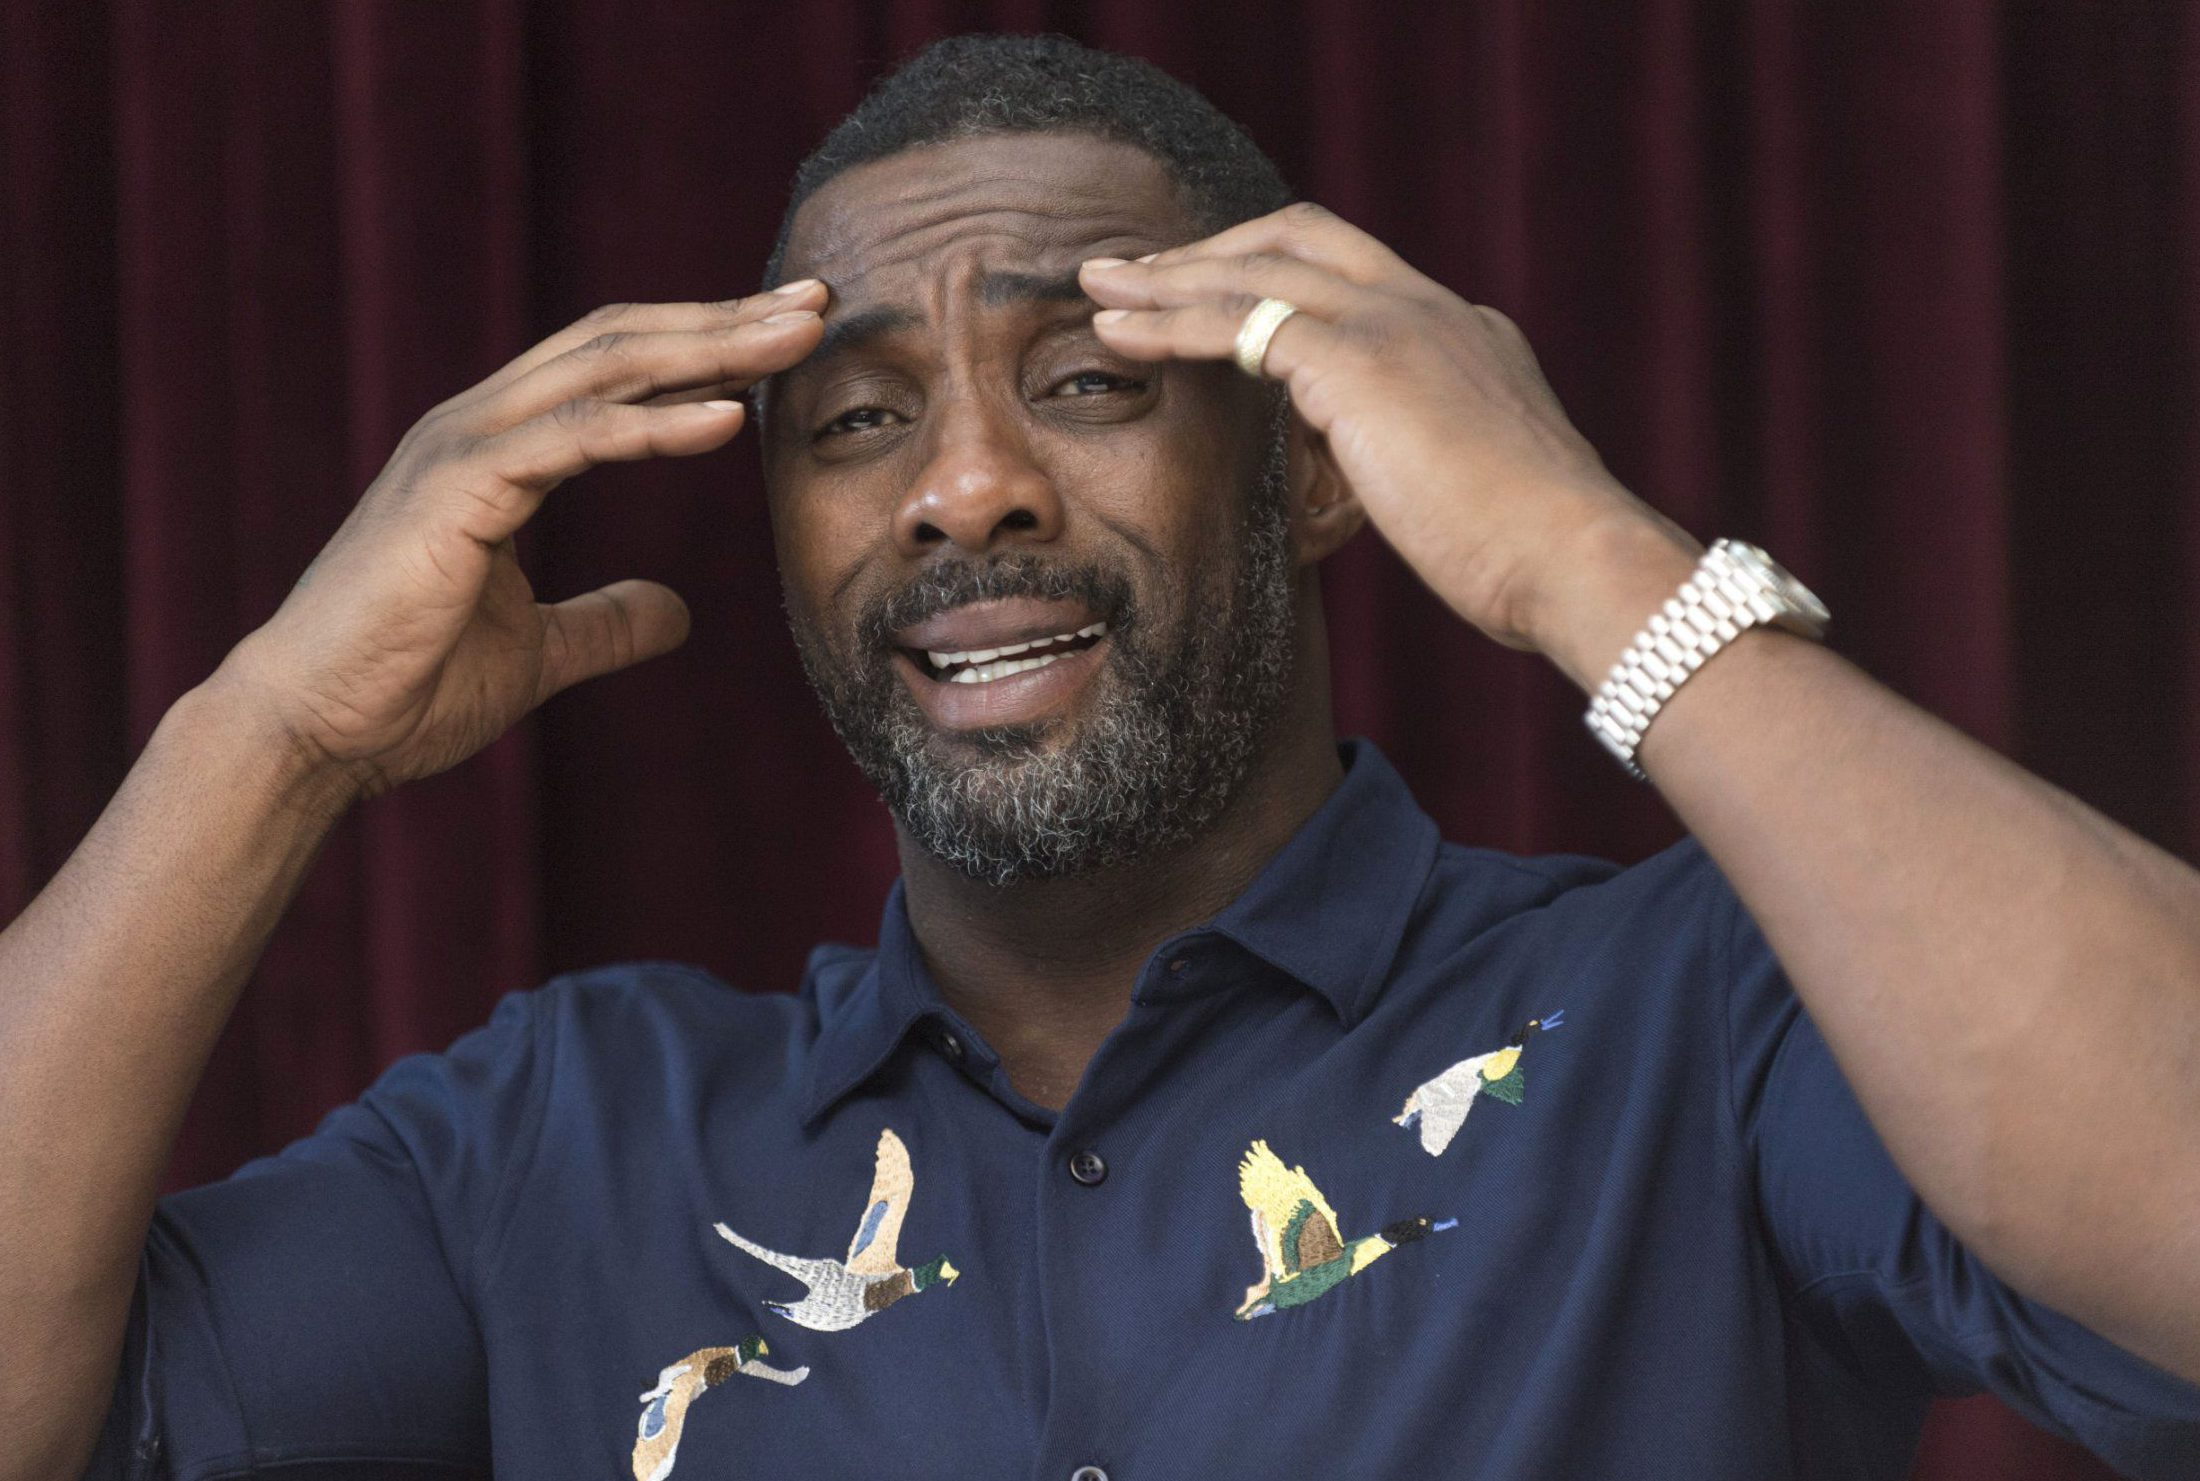 Idris Elba spills the tea on awkward moment between Taylor Swift and Kanye West and Prince Harry being 'in love'